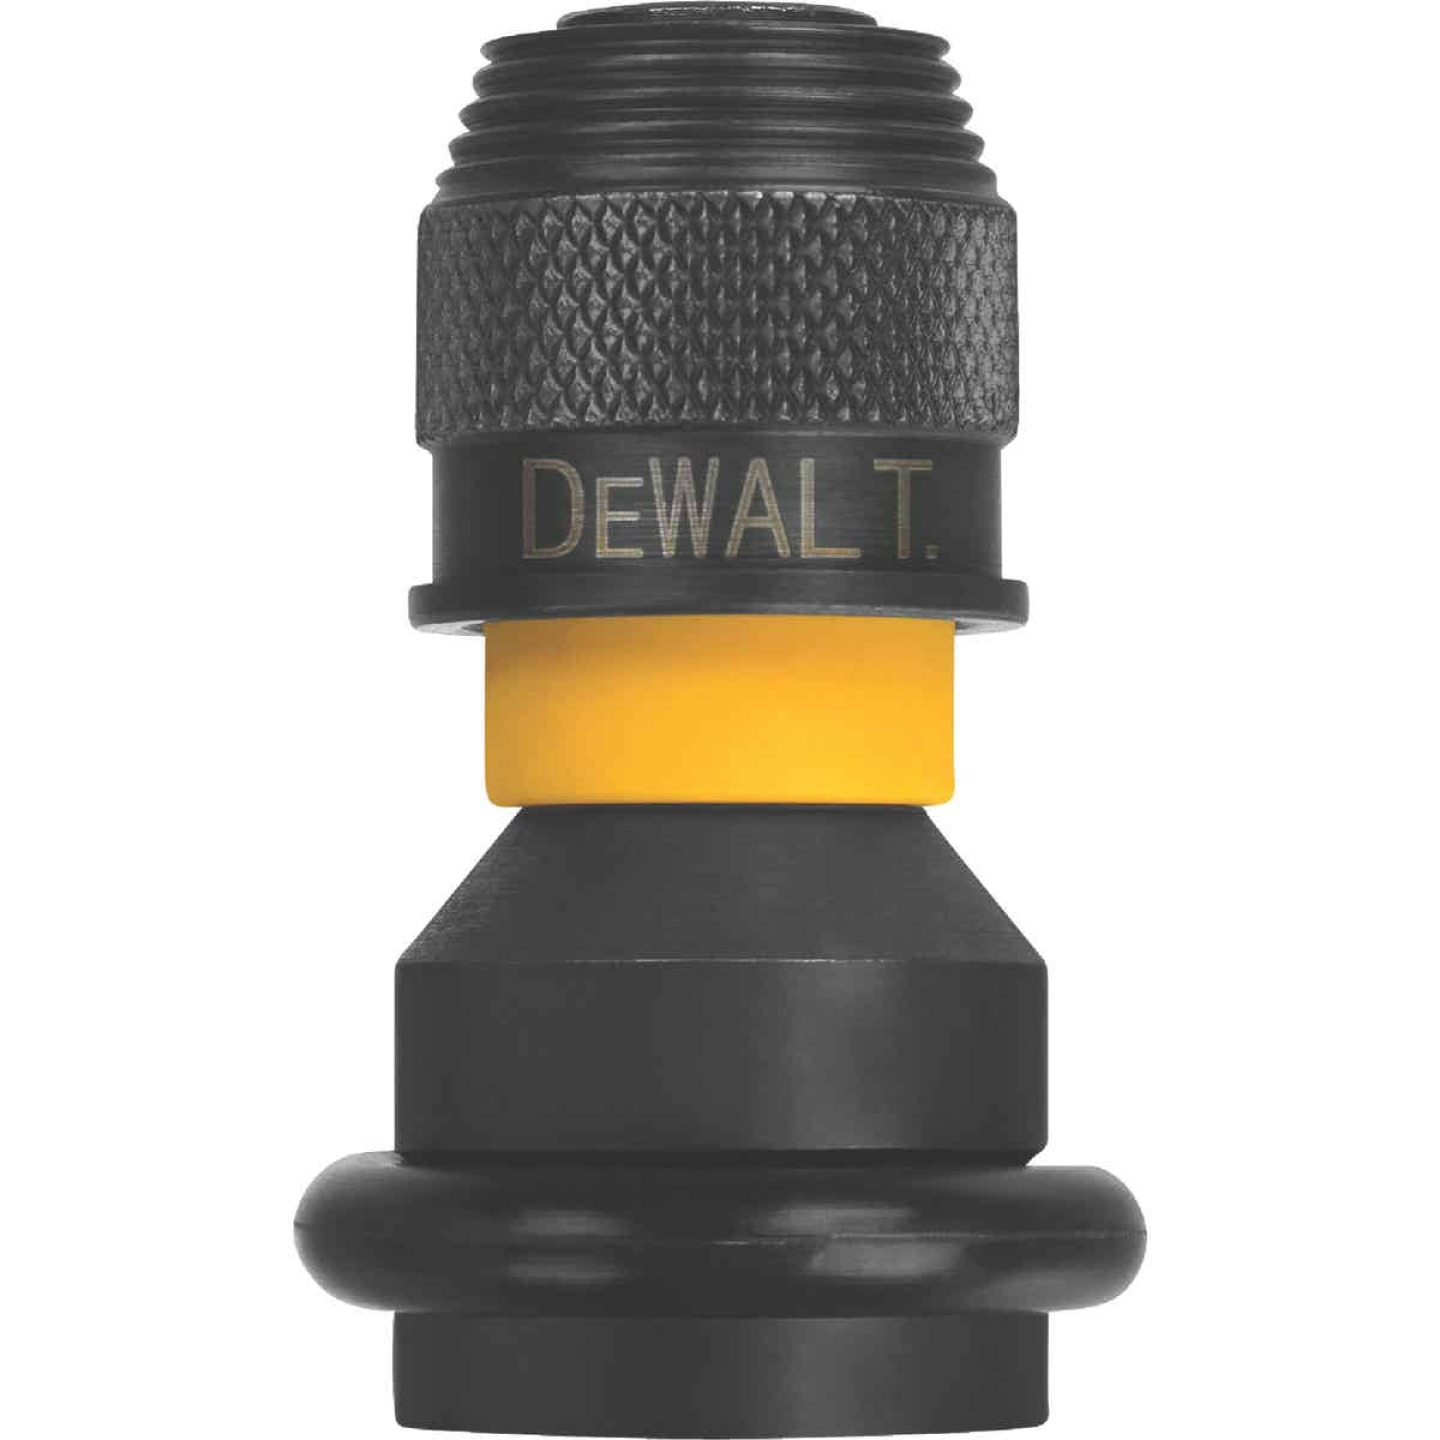 DeWalt 1/2 In. Square to 3 In. Hex Drive Adapter Image 1